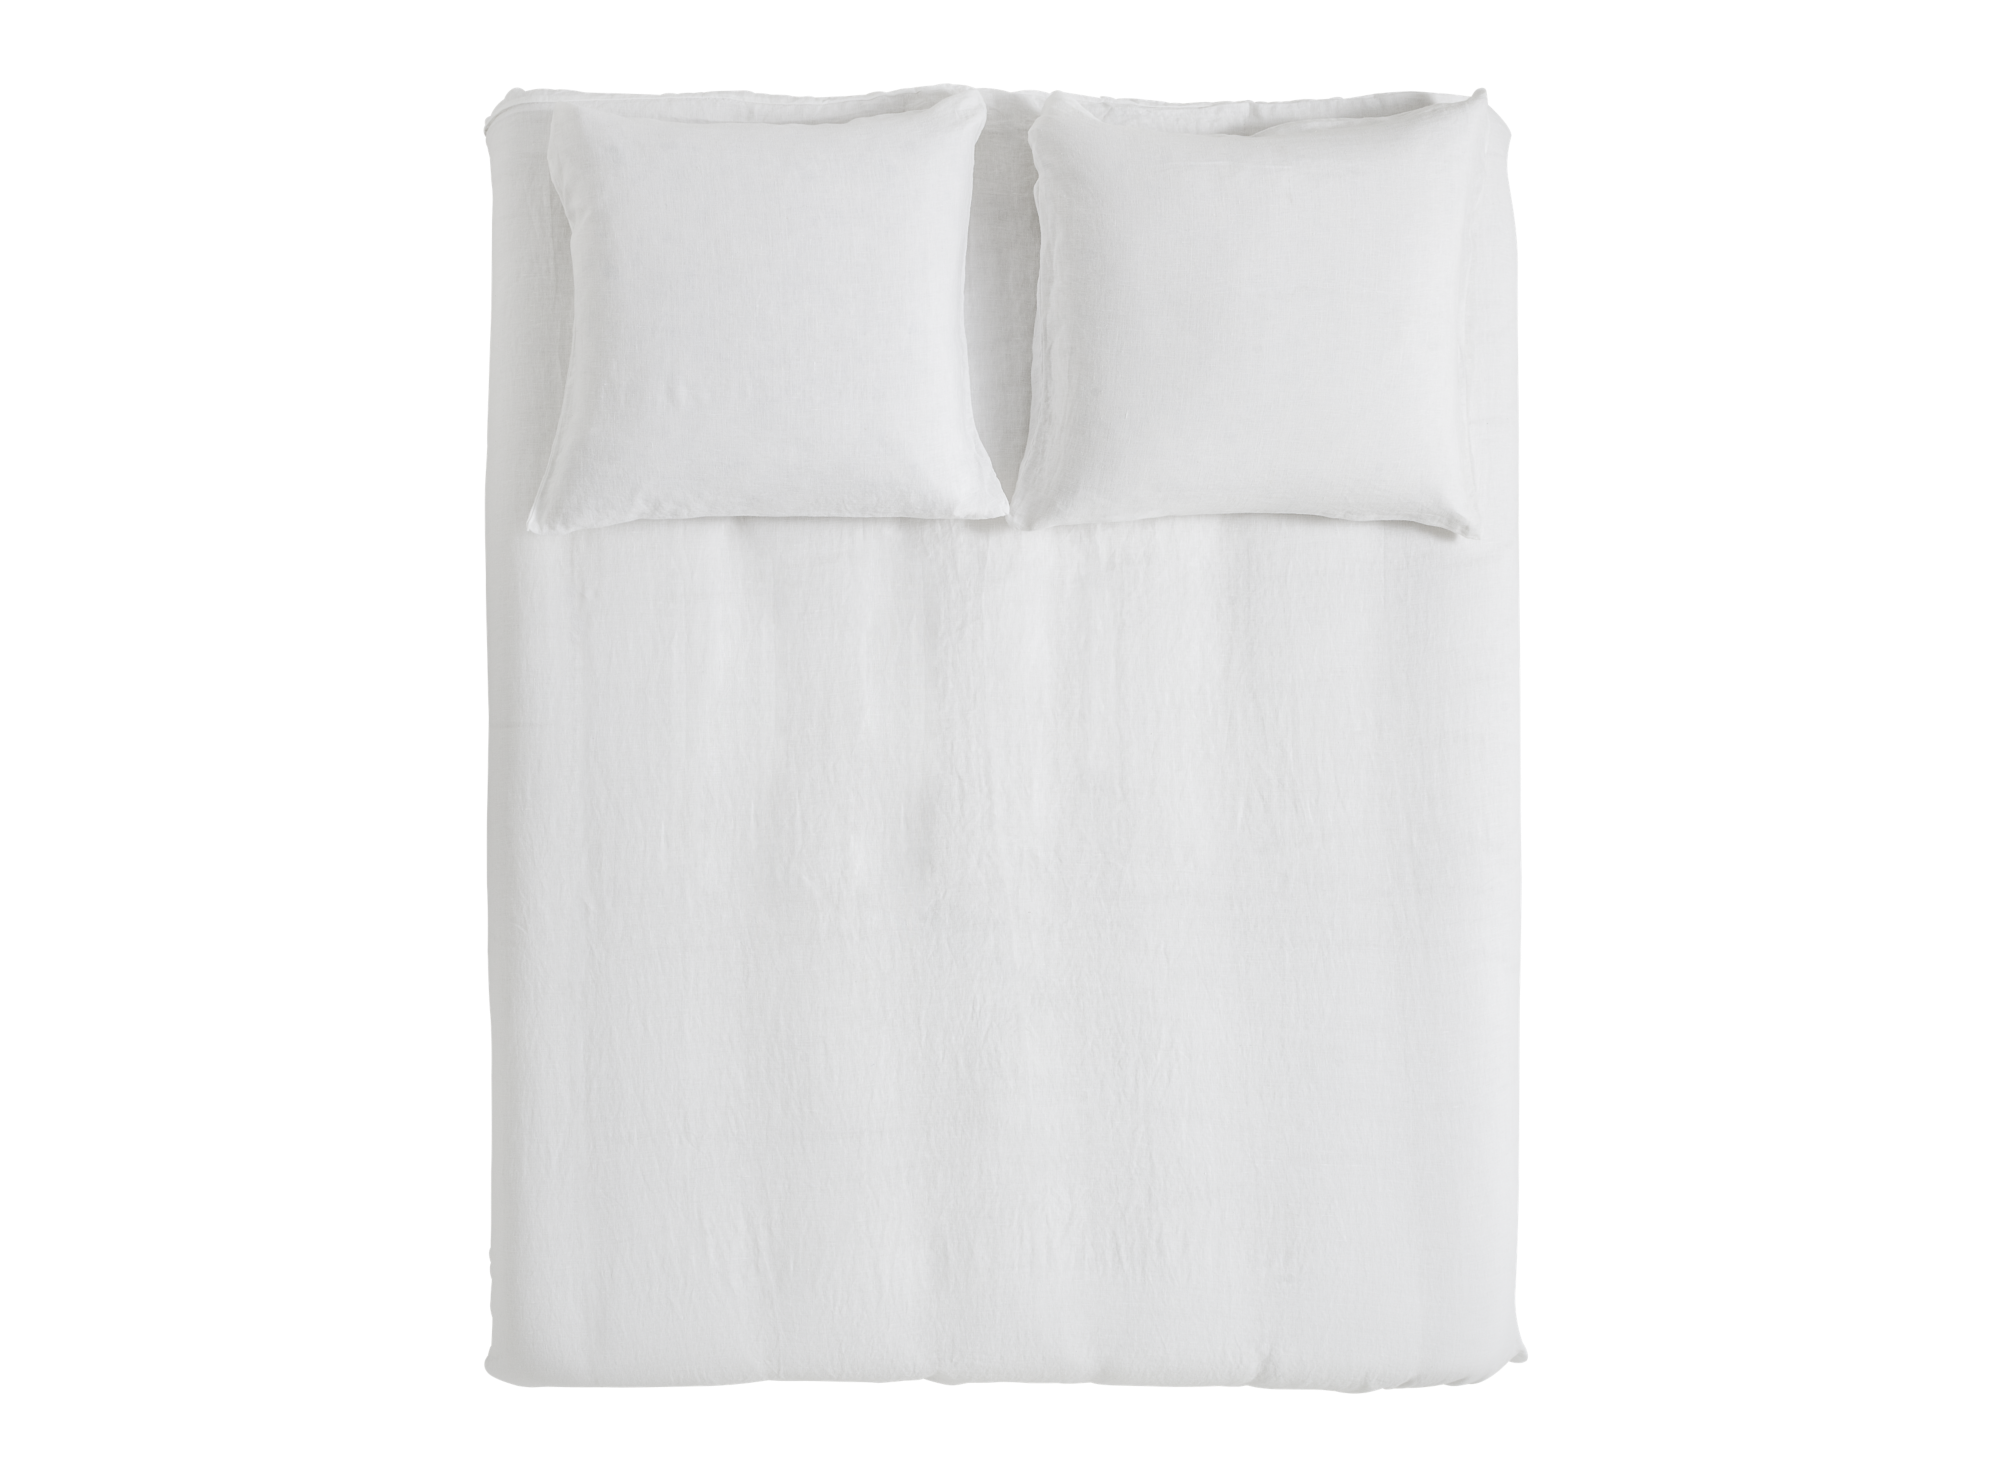 Housse de couette 220x240cm 2taies lin blanc fly for Housse de couette lin blanc